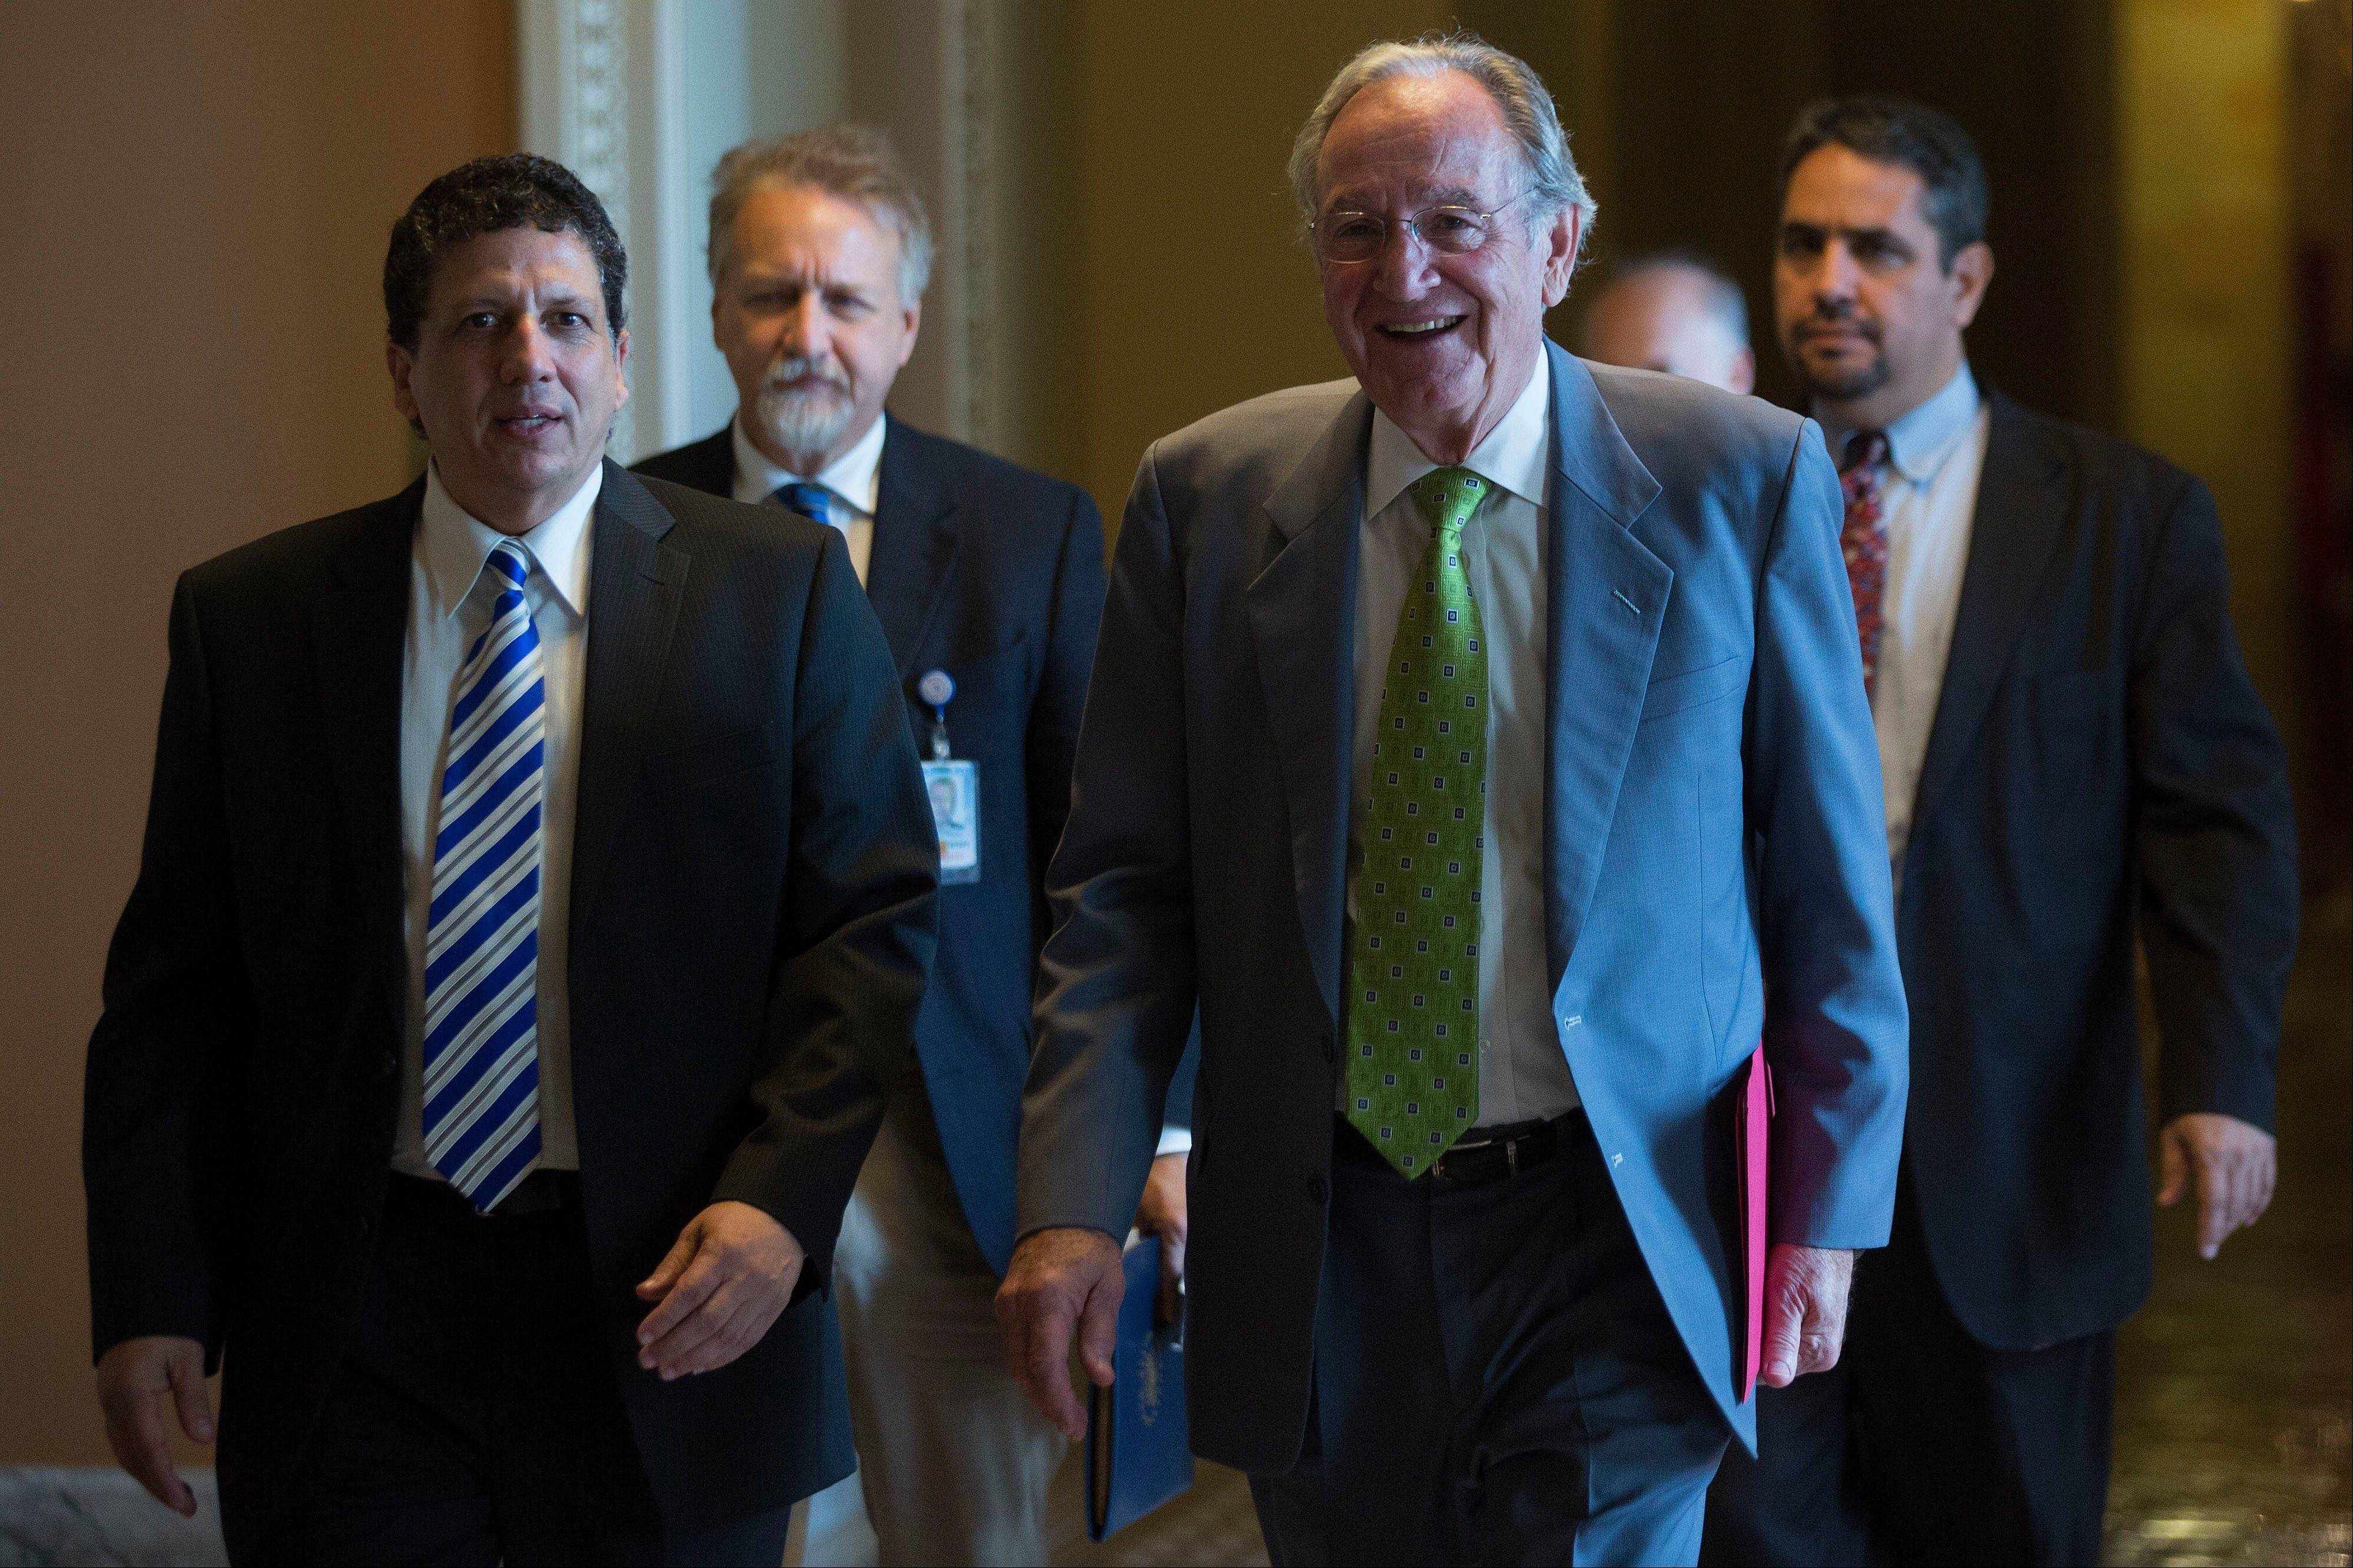 Senator Tom Harkin, a Democrat from Iowa, second from right, walks Friday in the U.S. Capitol in Washington, D.C. The U.S. Senate voted to finance the government through Nov. 15 after removing language to choke off funding for the health care law, putting pressure on the House to avoid a federal shutdown set to start Oct. 1.